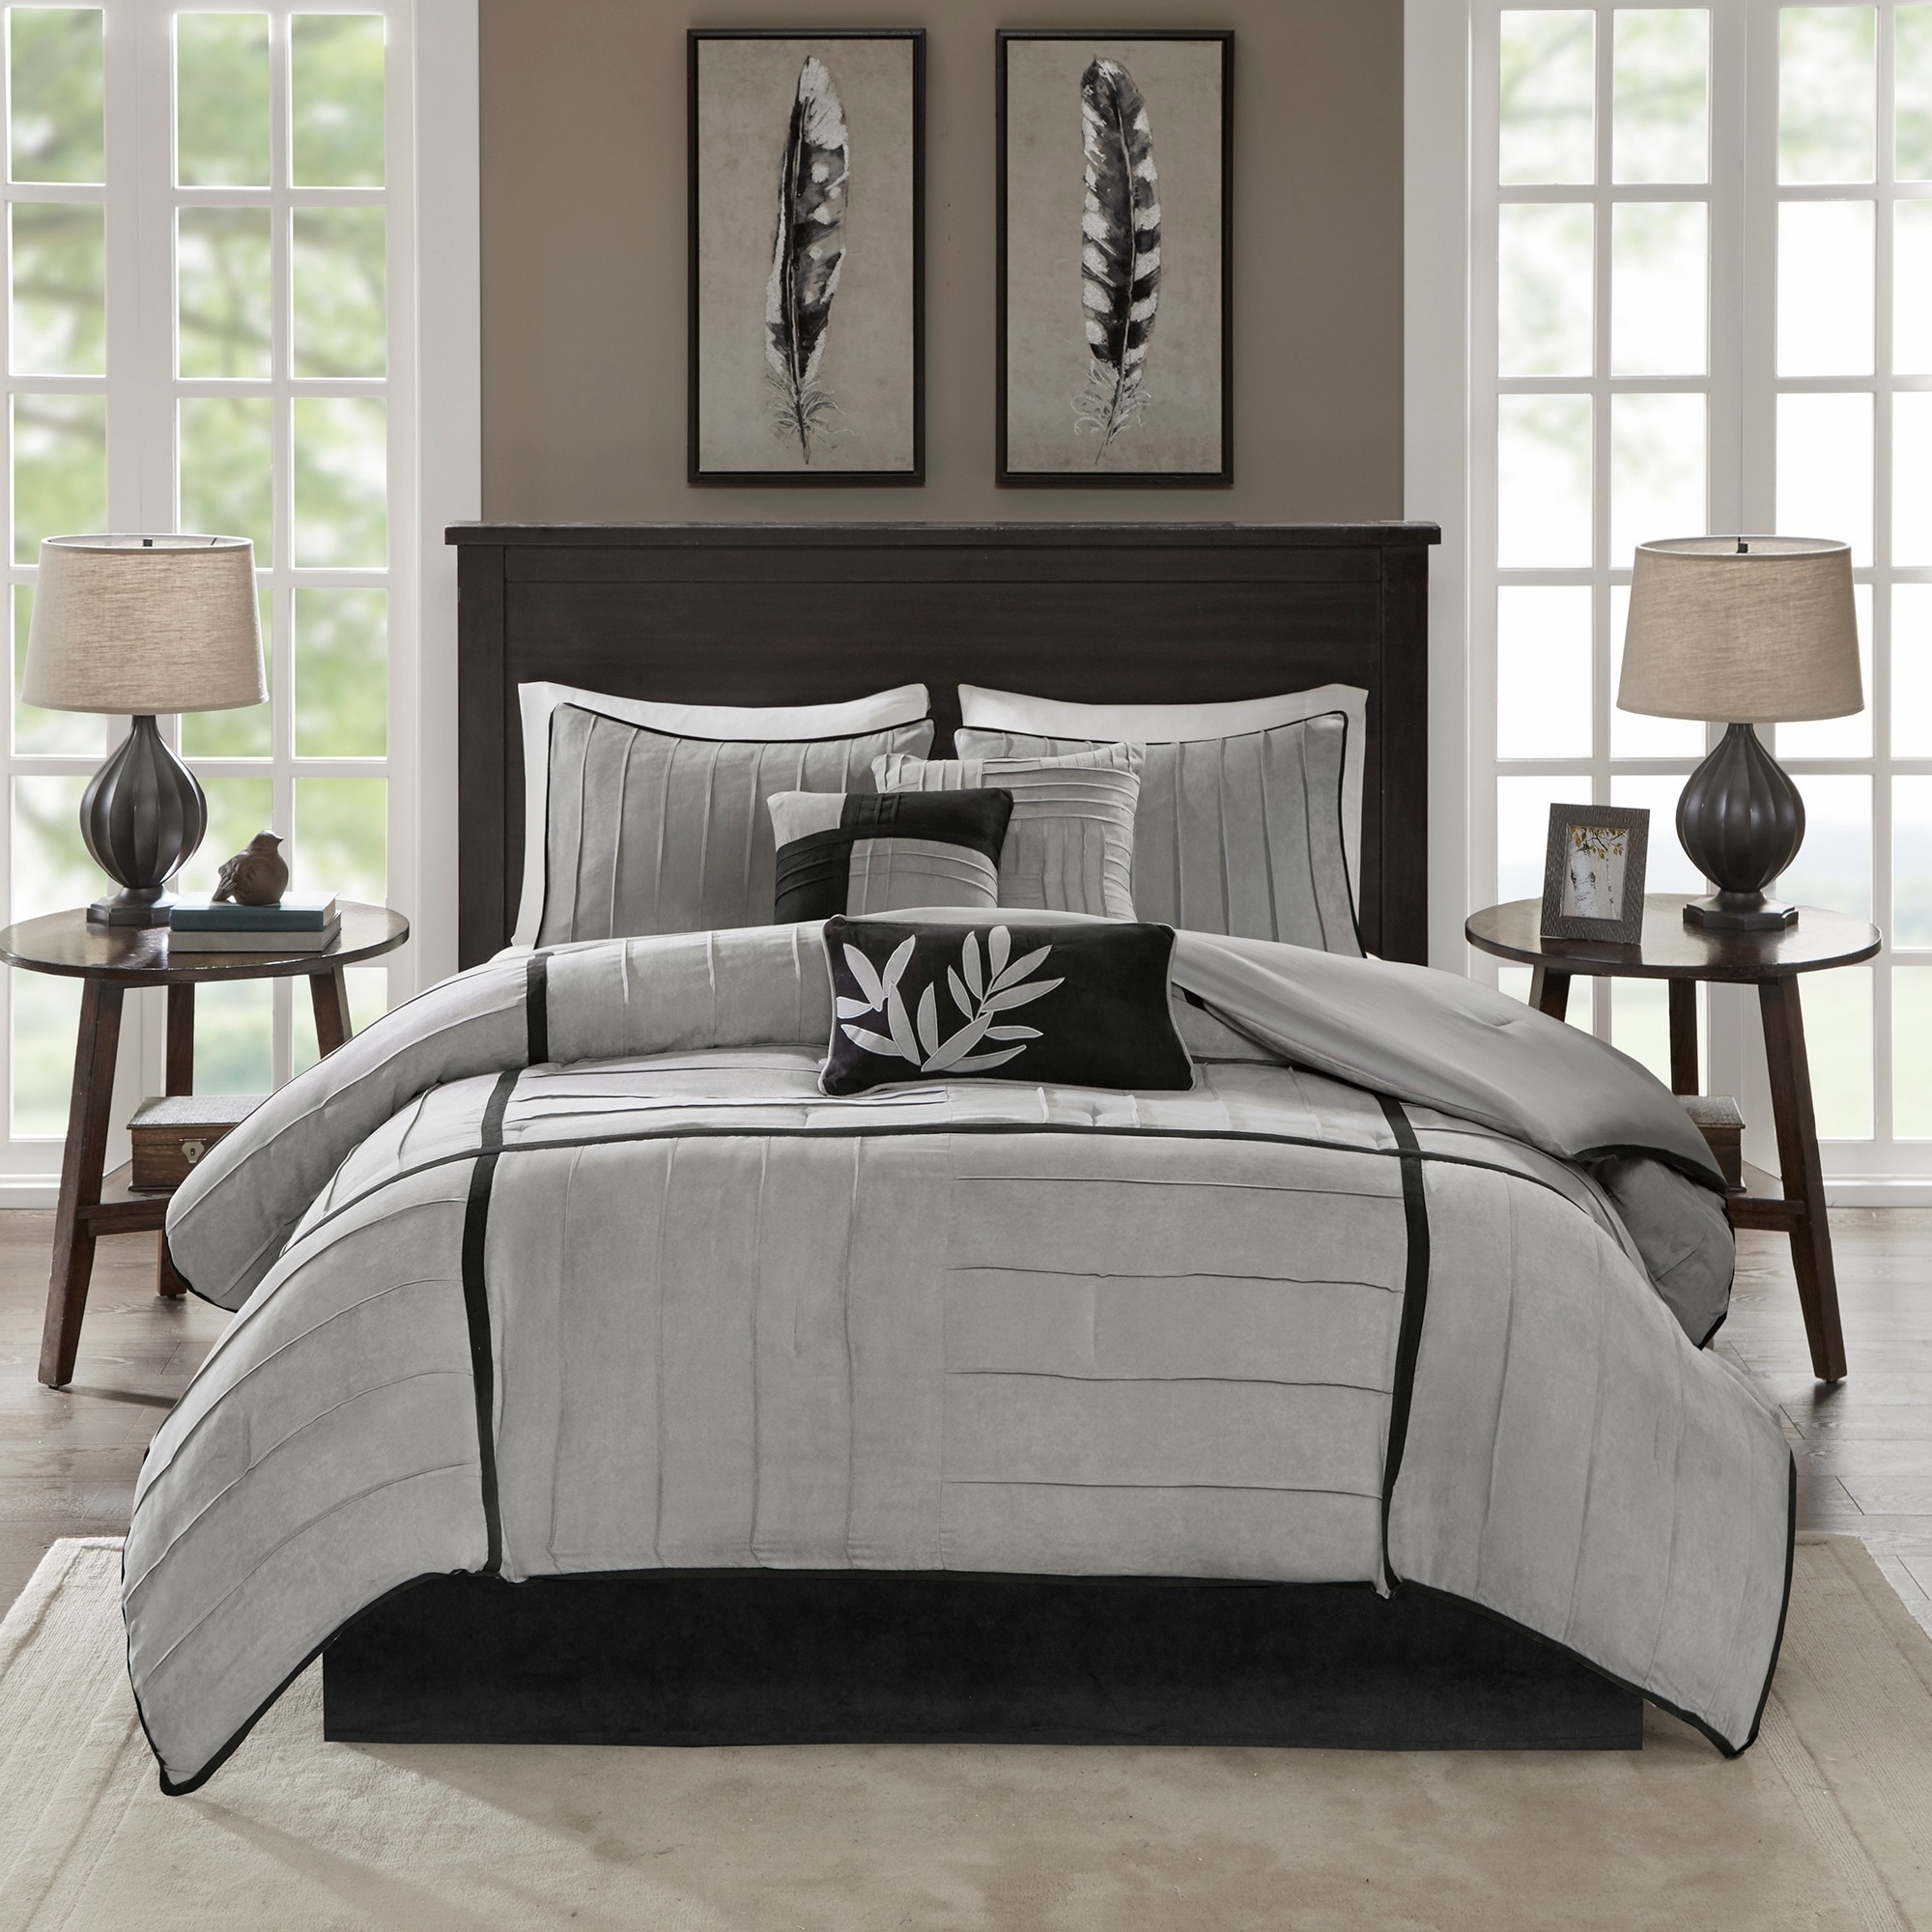 suede x view amazon daryl piece set com micro dp large twin larger comforter design intelligent